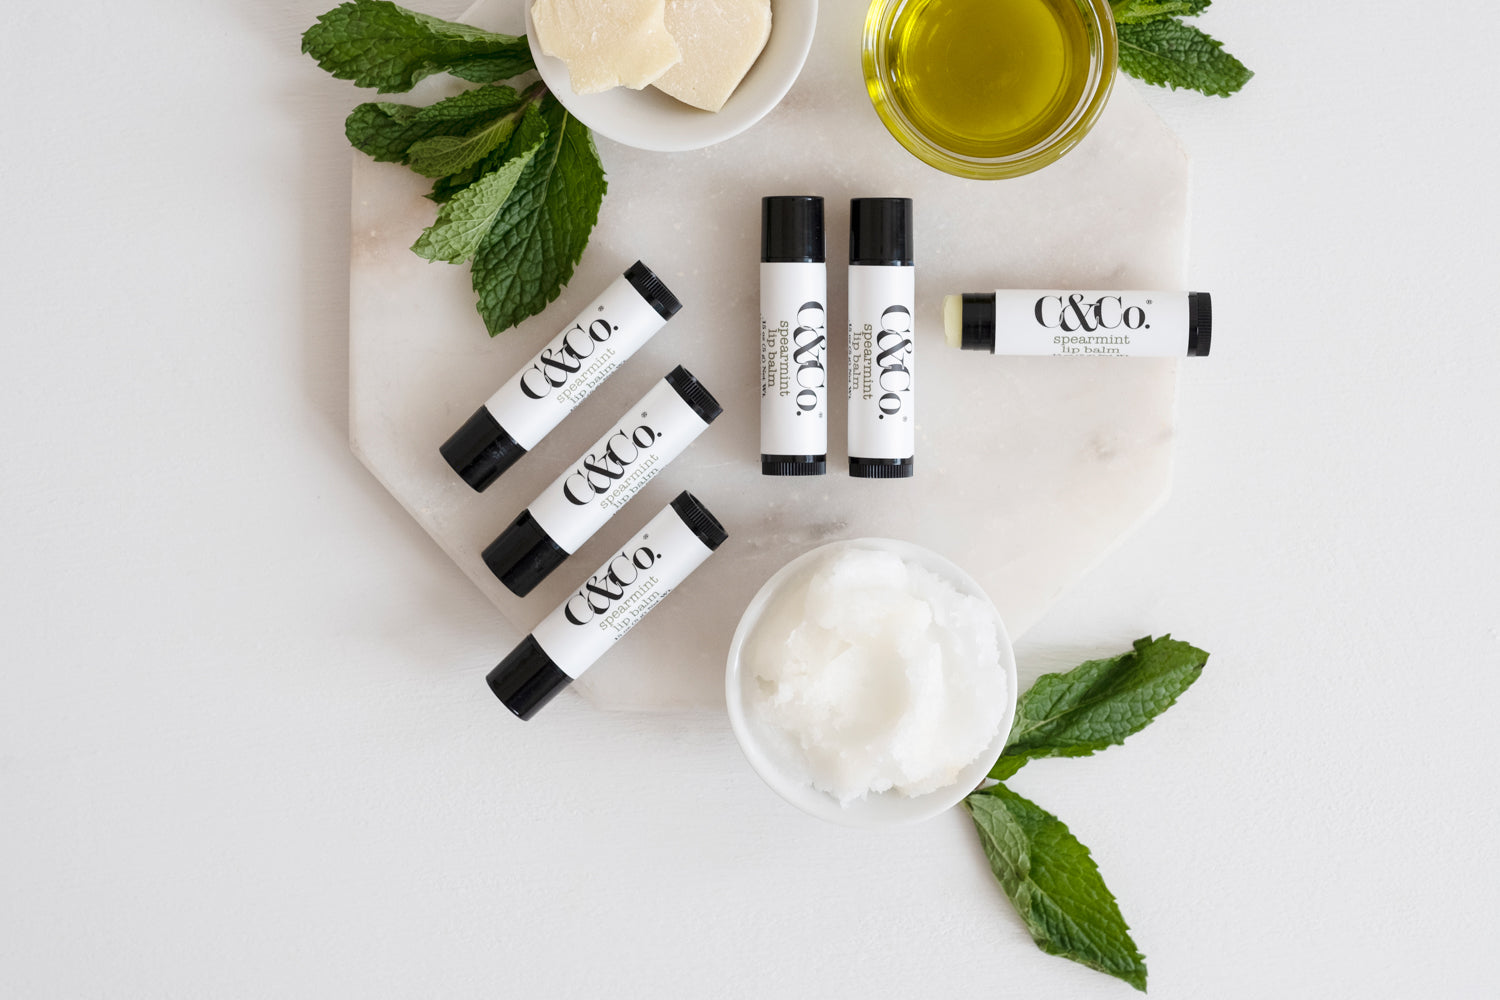 Spearmint Lip Balm - C & Co.